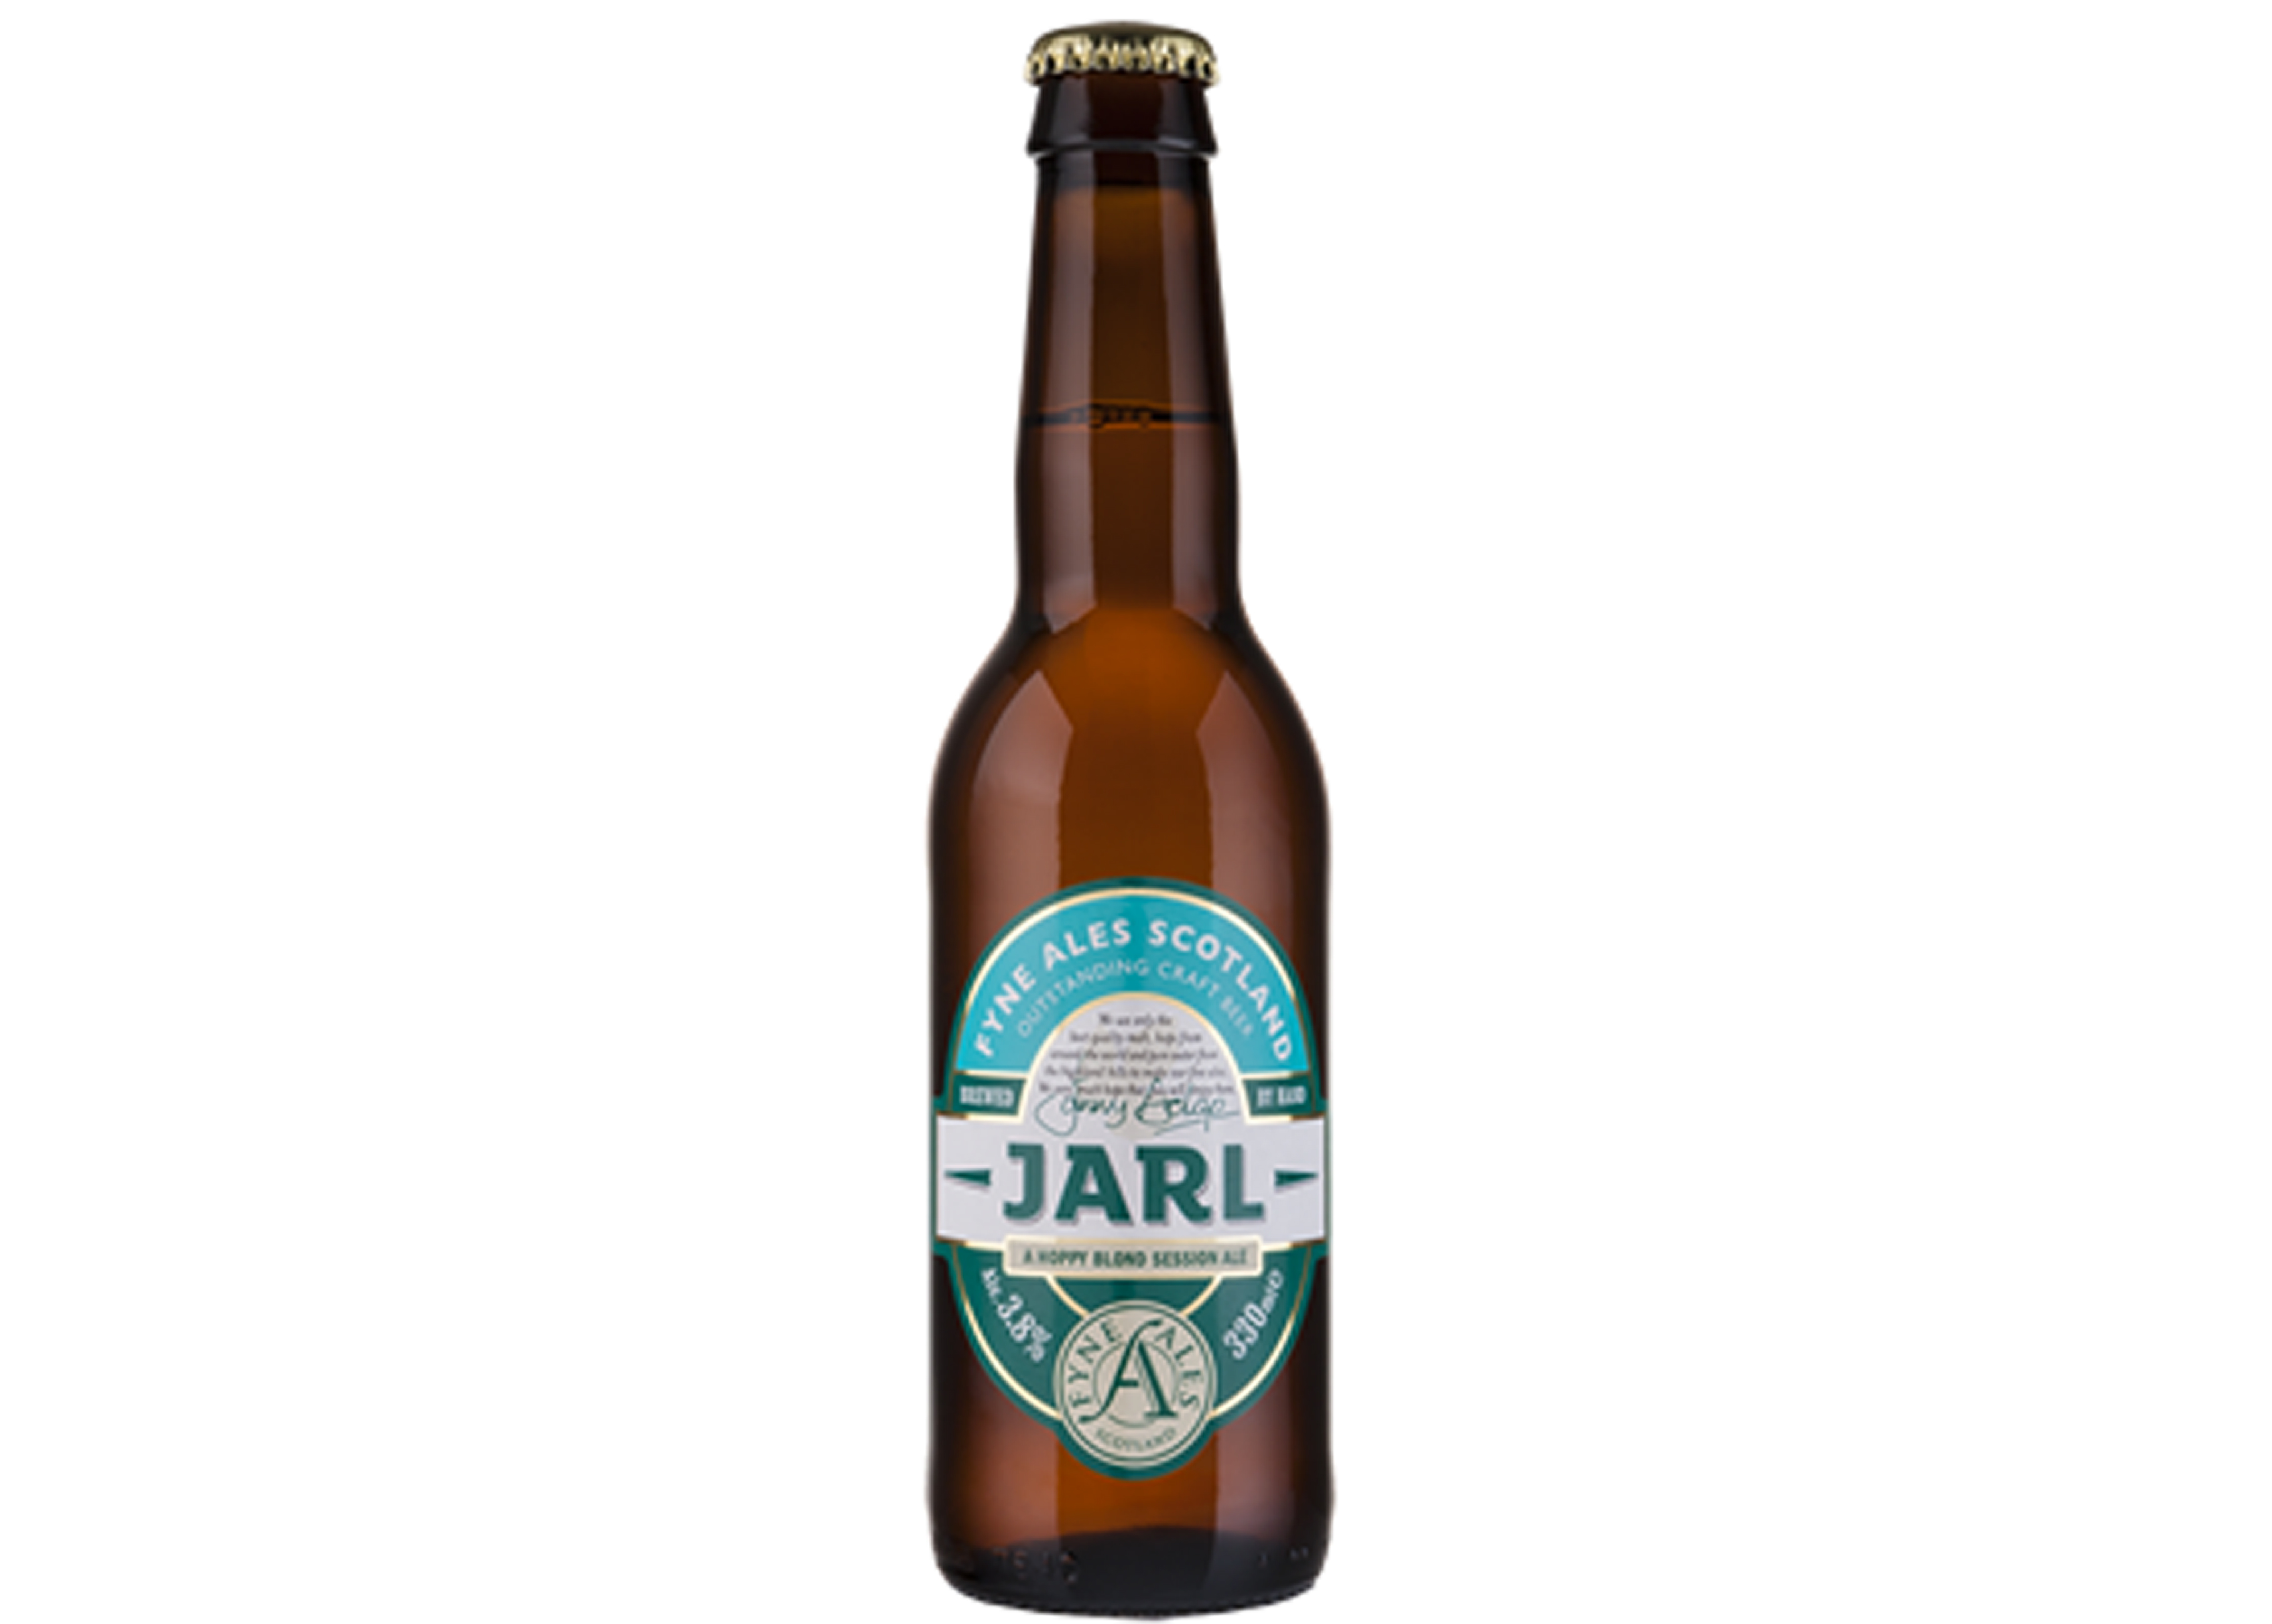 A bottle of Fyne Ales' Jarg, from The Scottish Real Ale Shop